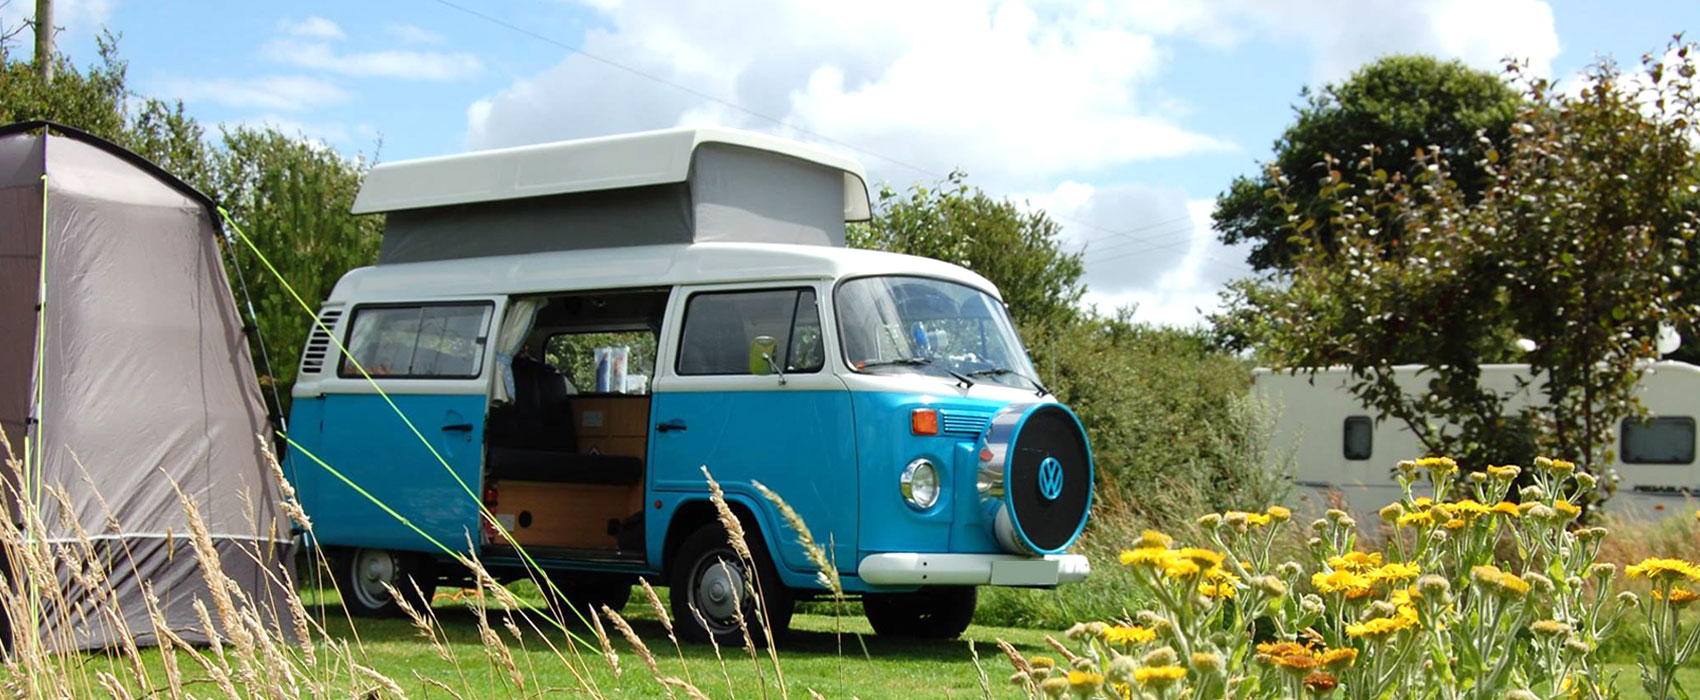 Book Your VW Campervan Holiday Experience